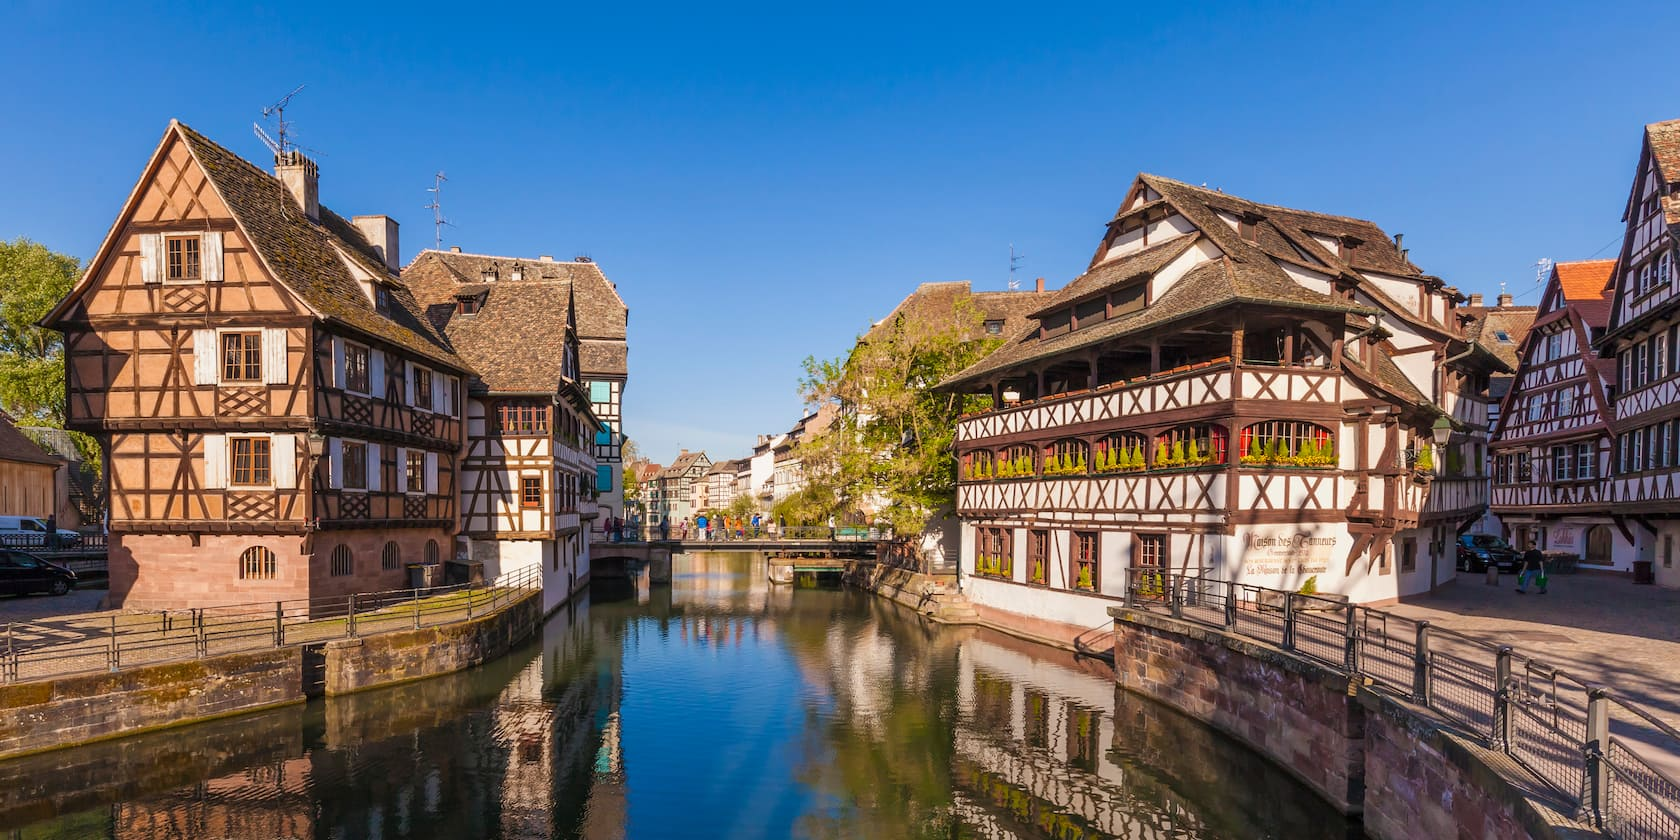 A waterway through the center of old Strasbourg, France